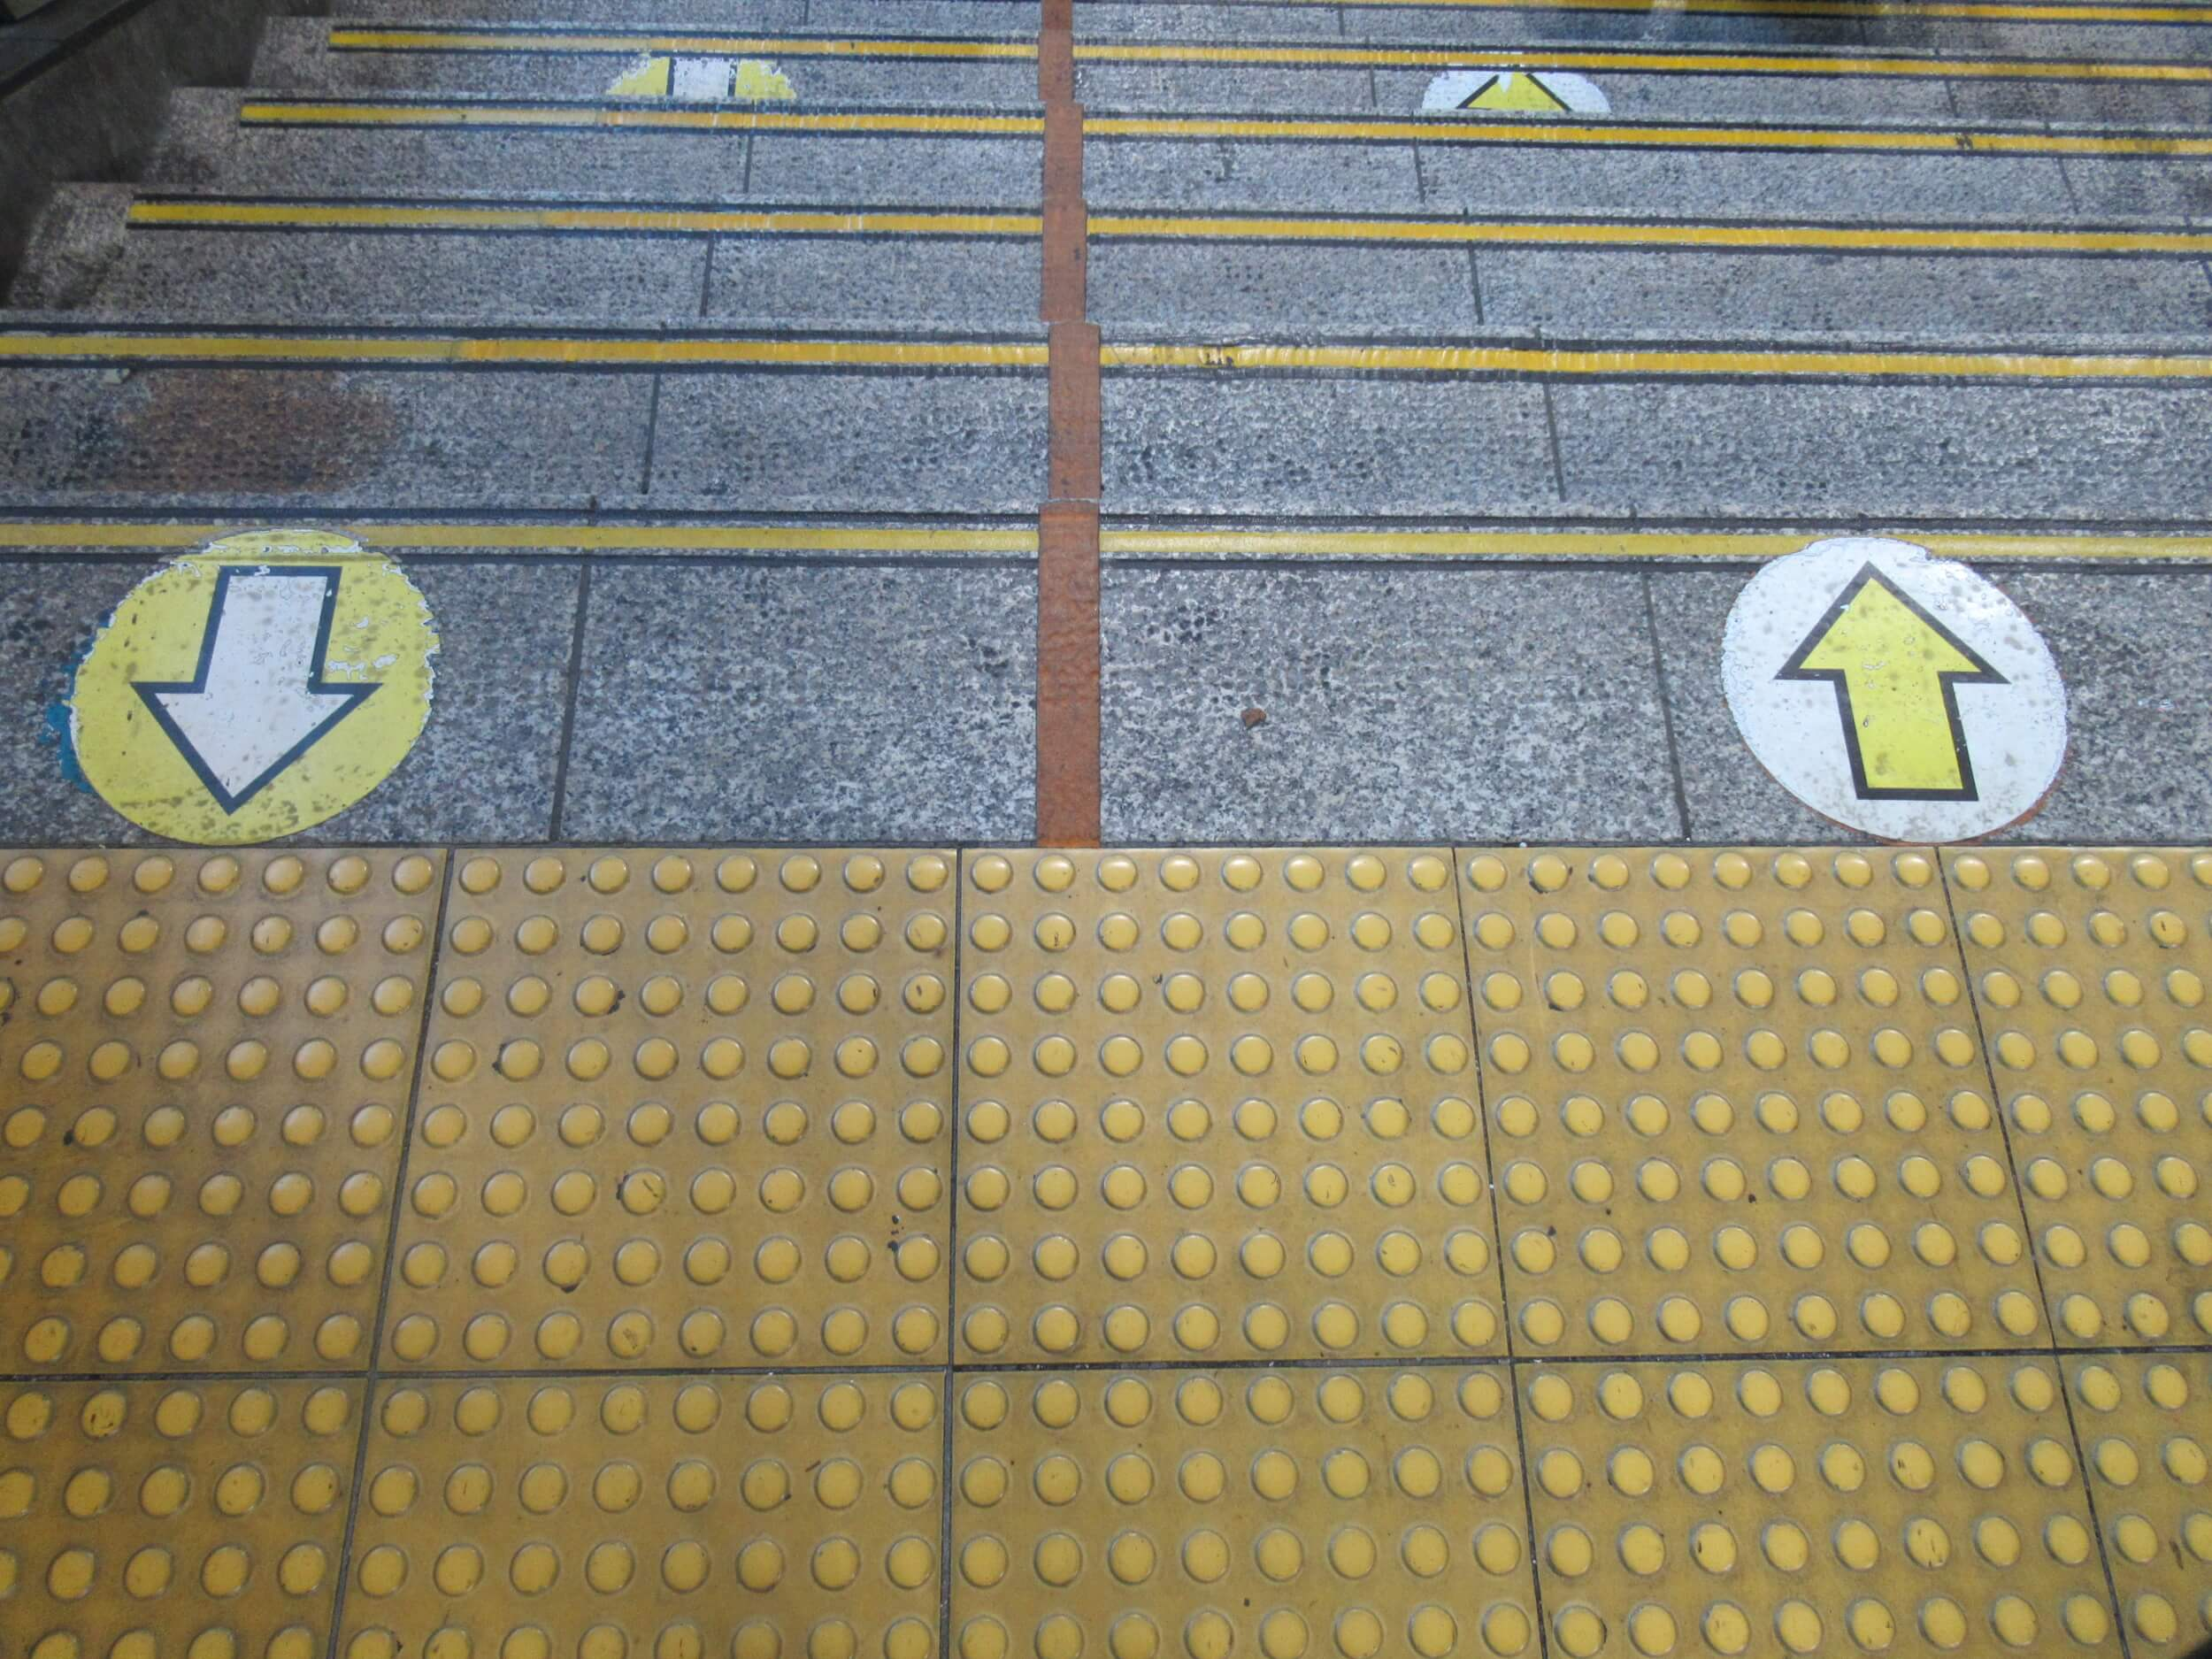 stairs of the 1st and 2nd line of Shinagawa station